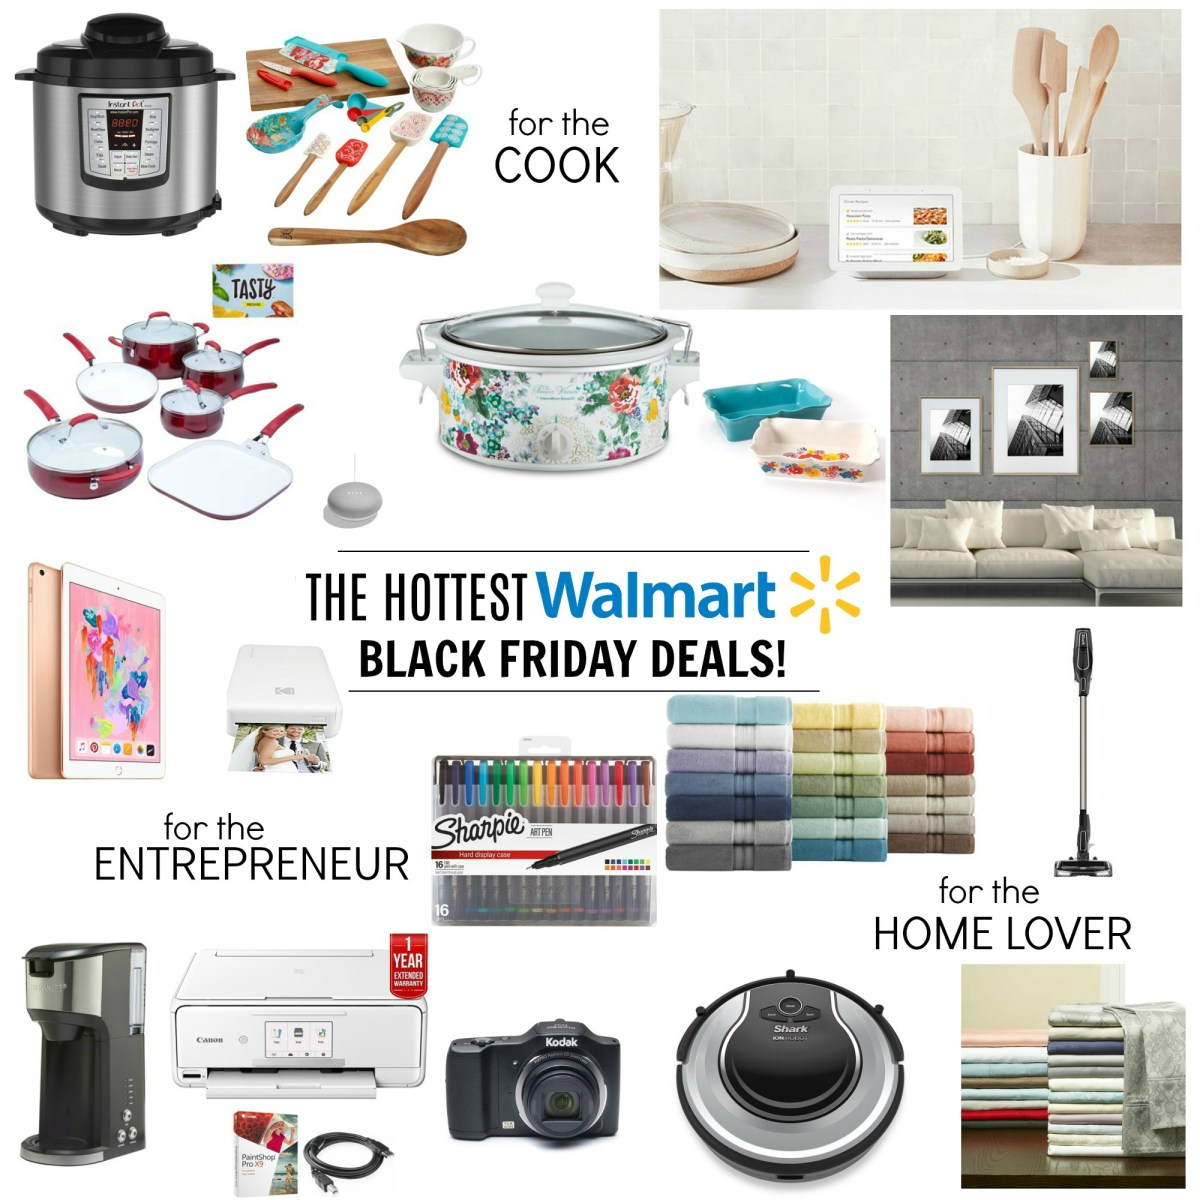 The HOTTEST 2018 Walmart Black Friday Deals - for HER!